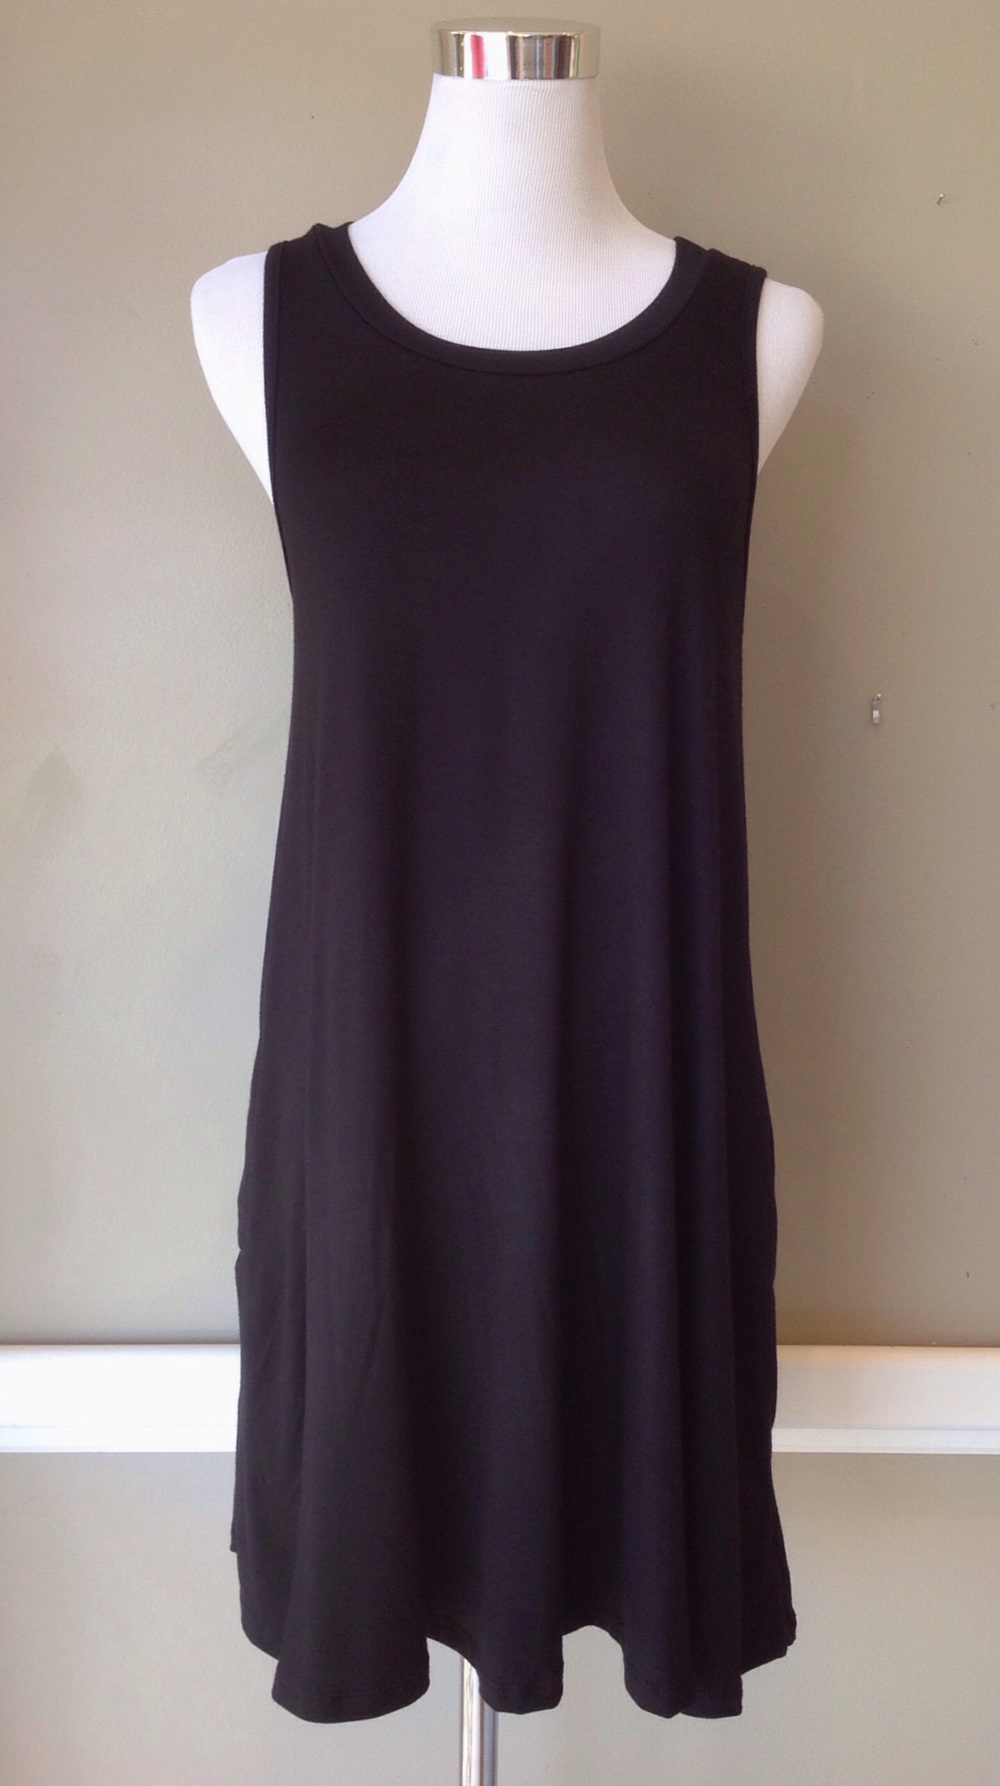 Black knit tank dress with side pockets, $34